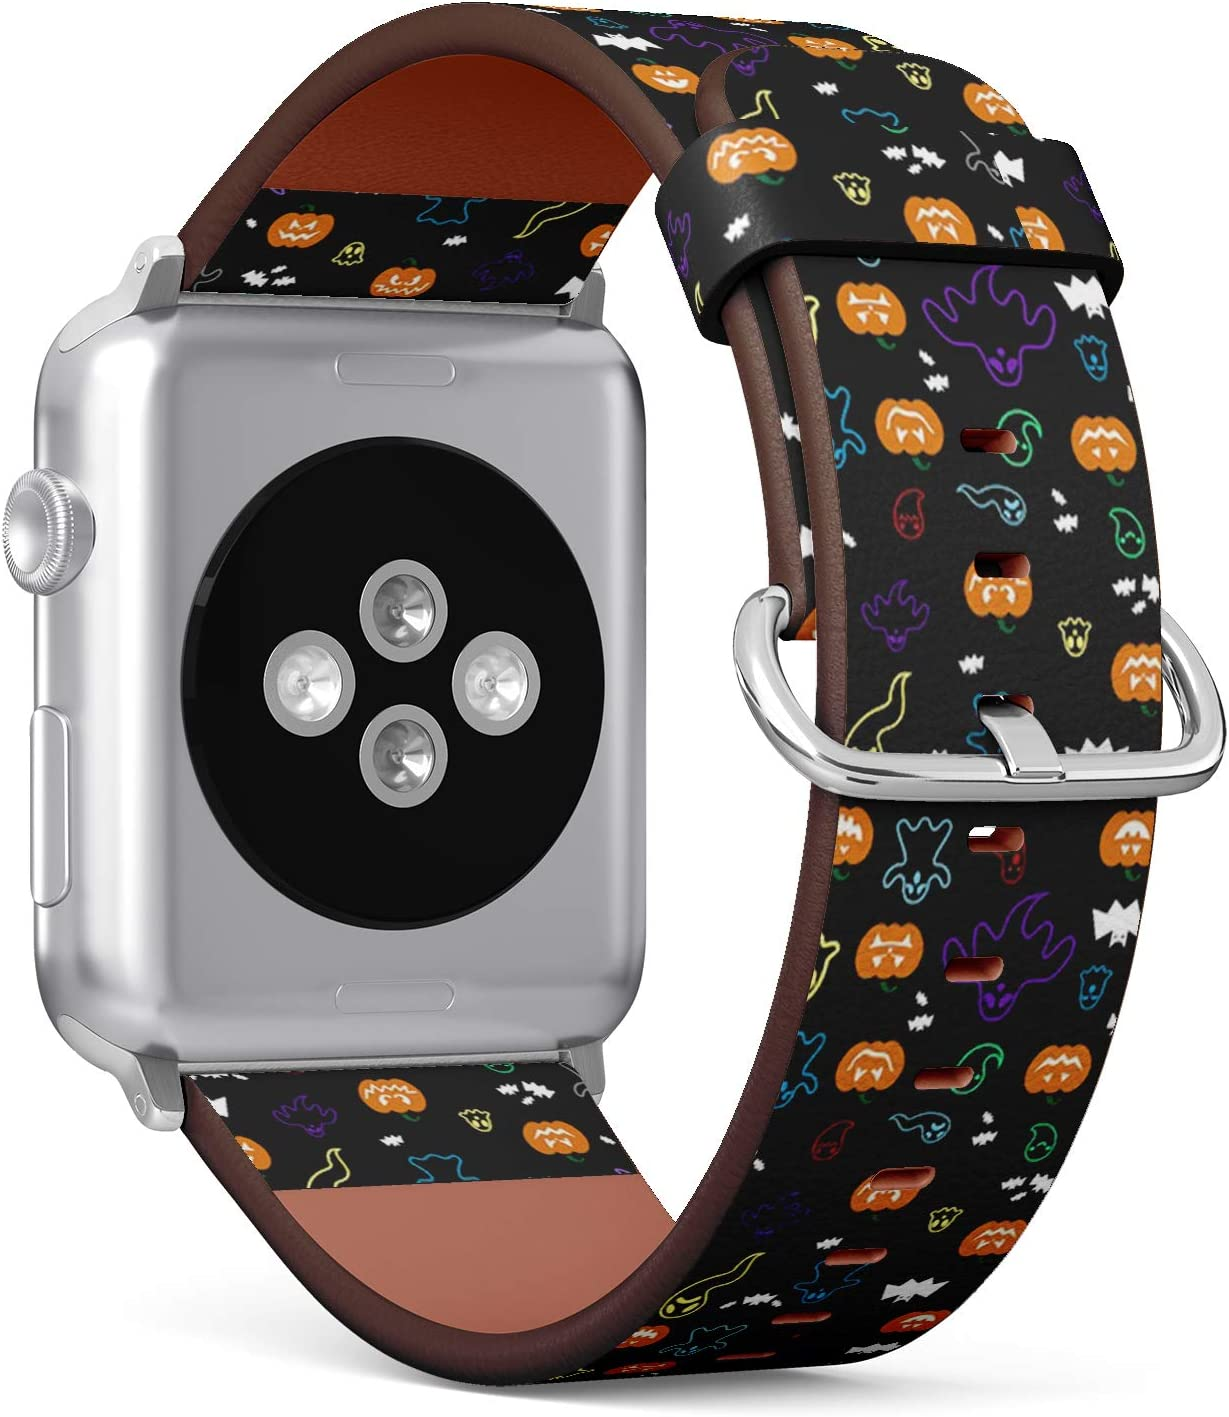 Compatible with Small Apple Watch 38mm & 40mm - (Series 5, 4, 3, 2, 1) Leather Watch Wrist Band Strap Bracelet with Stainless Steel Clasp and Adapters (Halloween Ghost Bats Pumpkins)